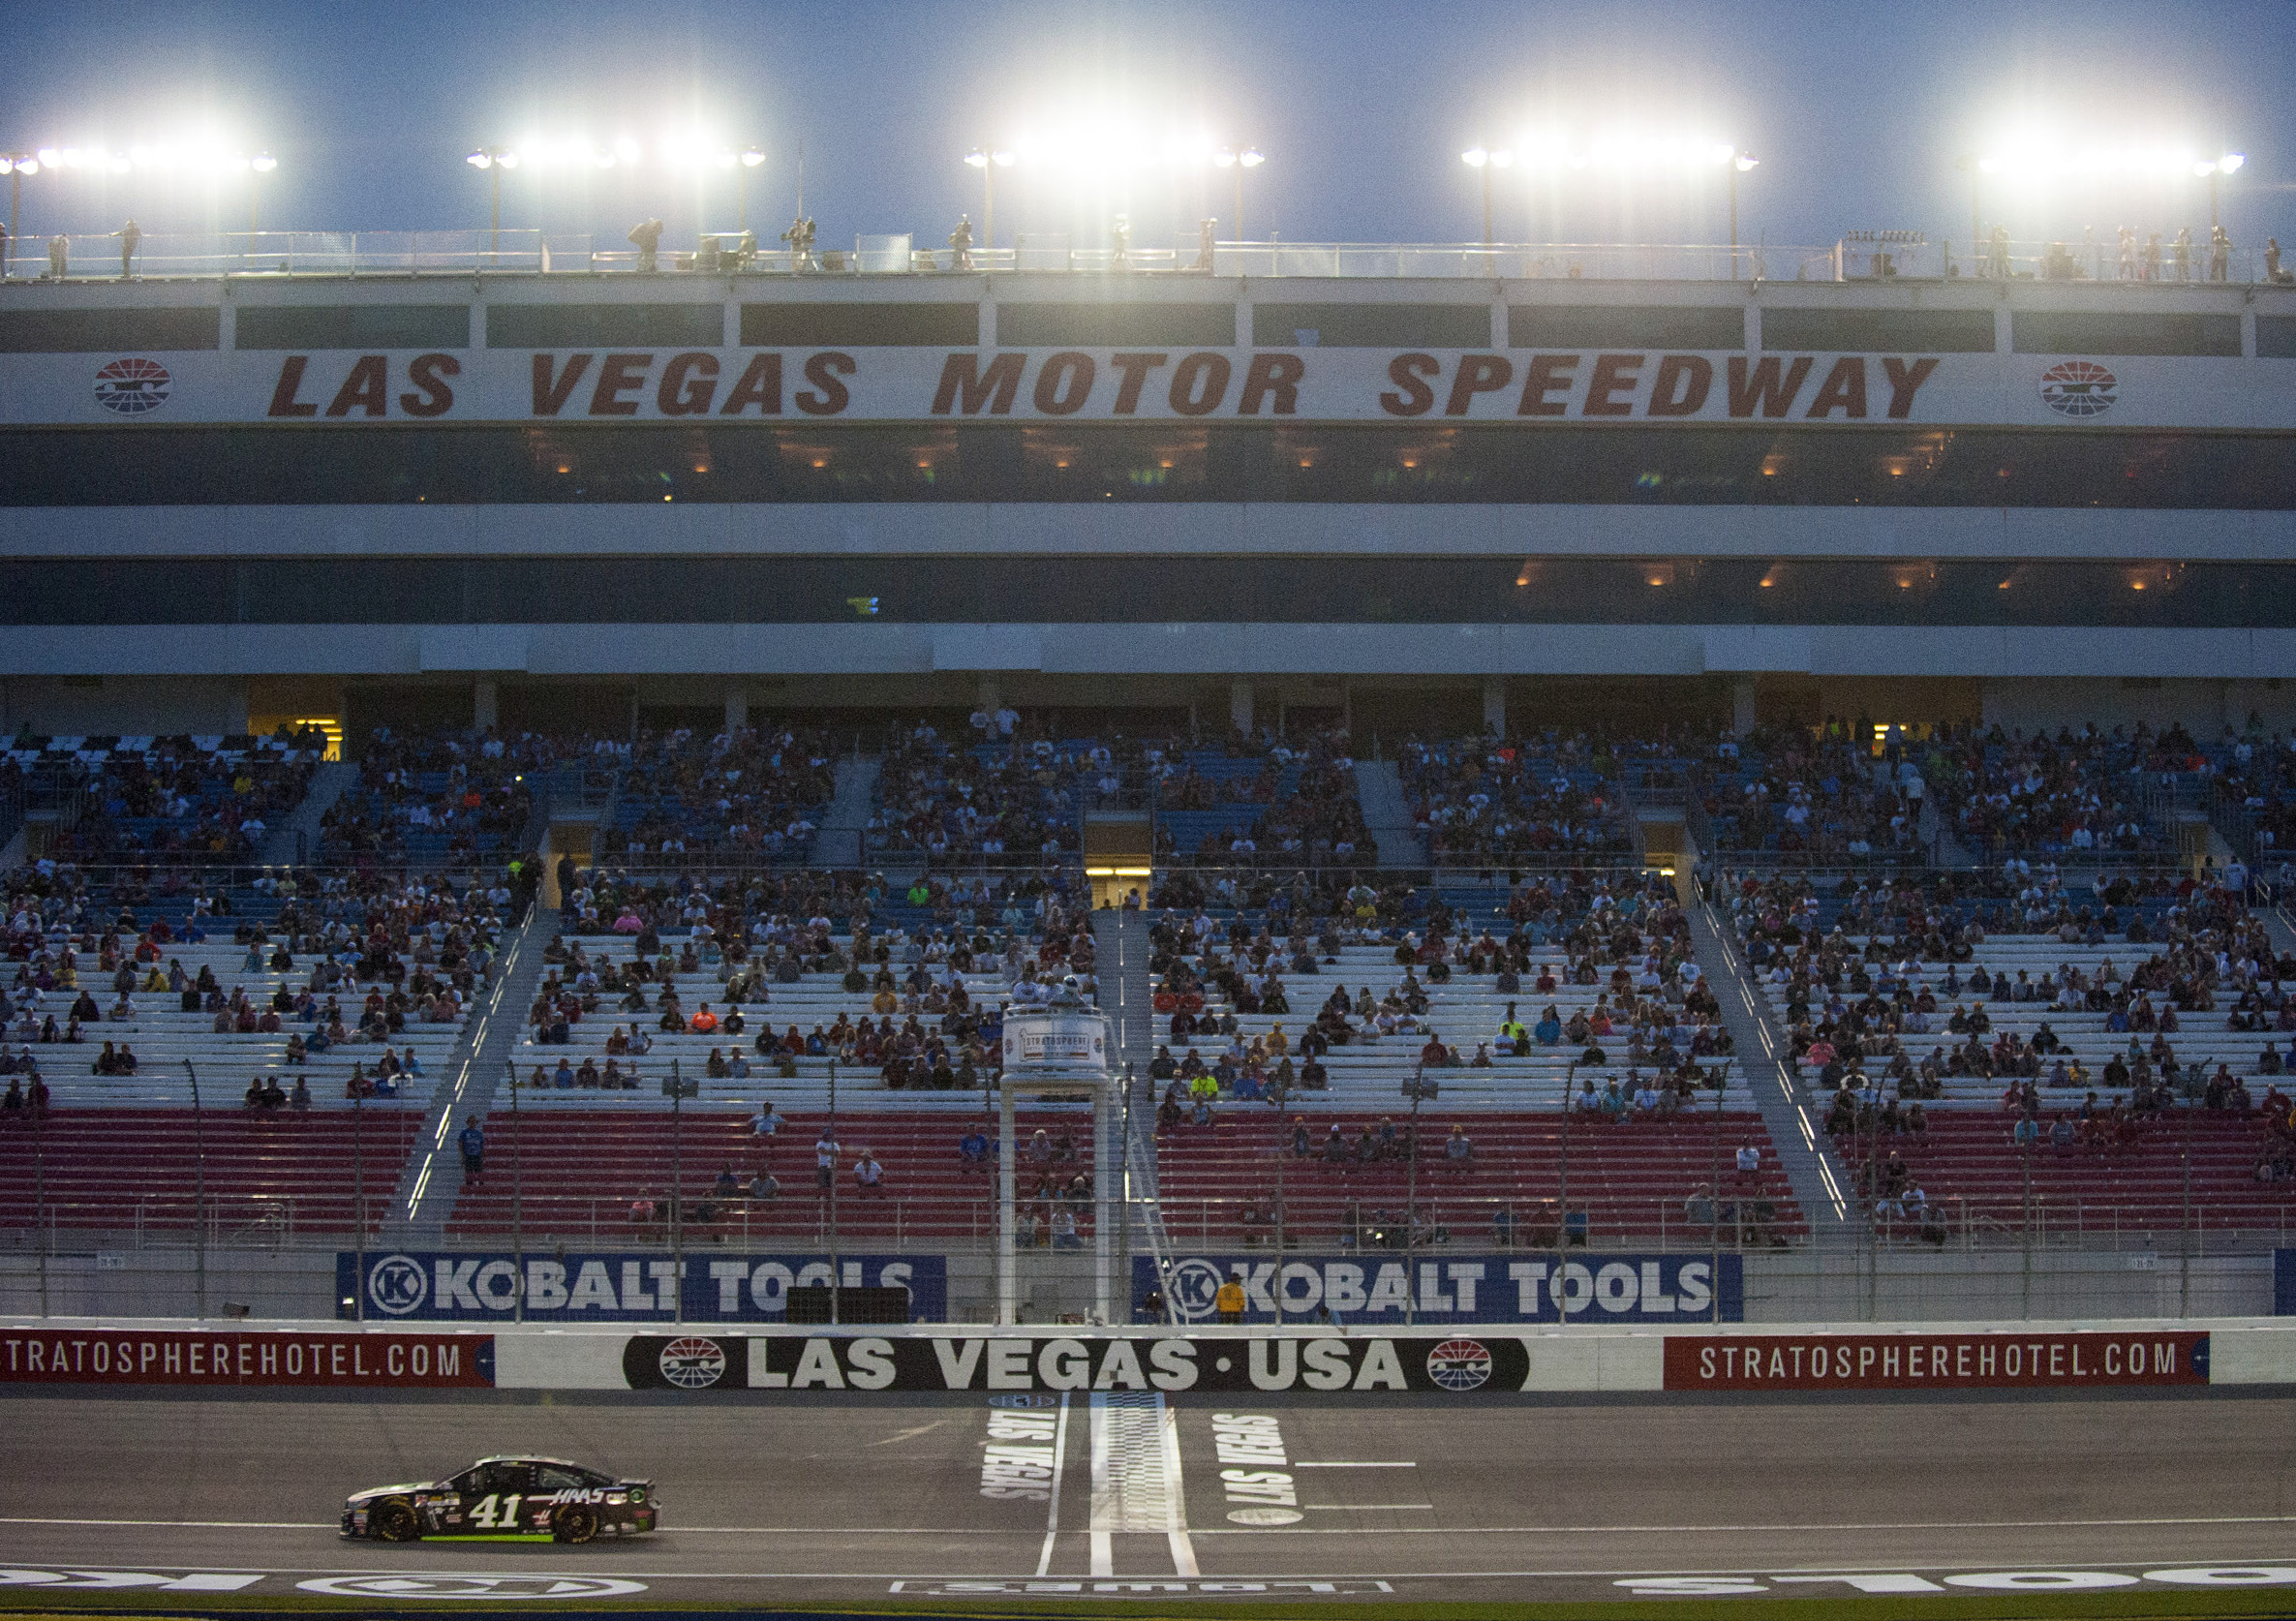 Power rankings kobalt 400 from las vegas motor speedway Las vegas motor speedway tickets